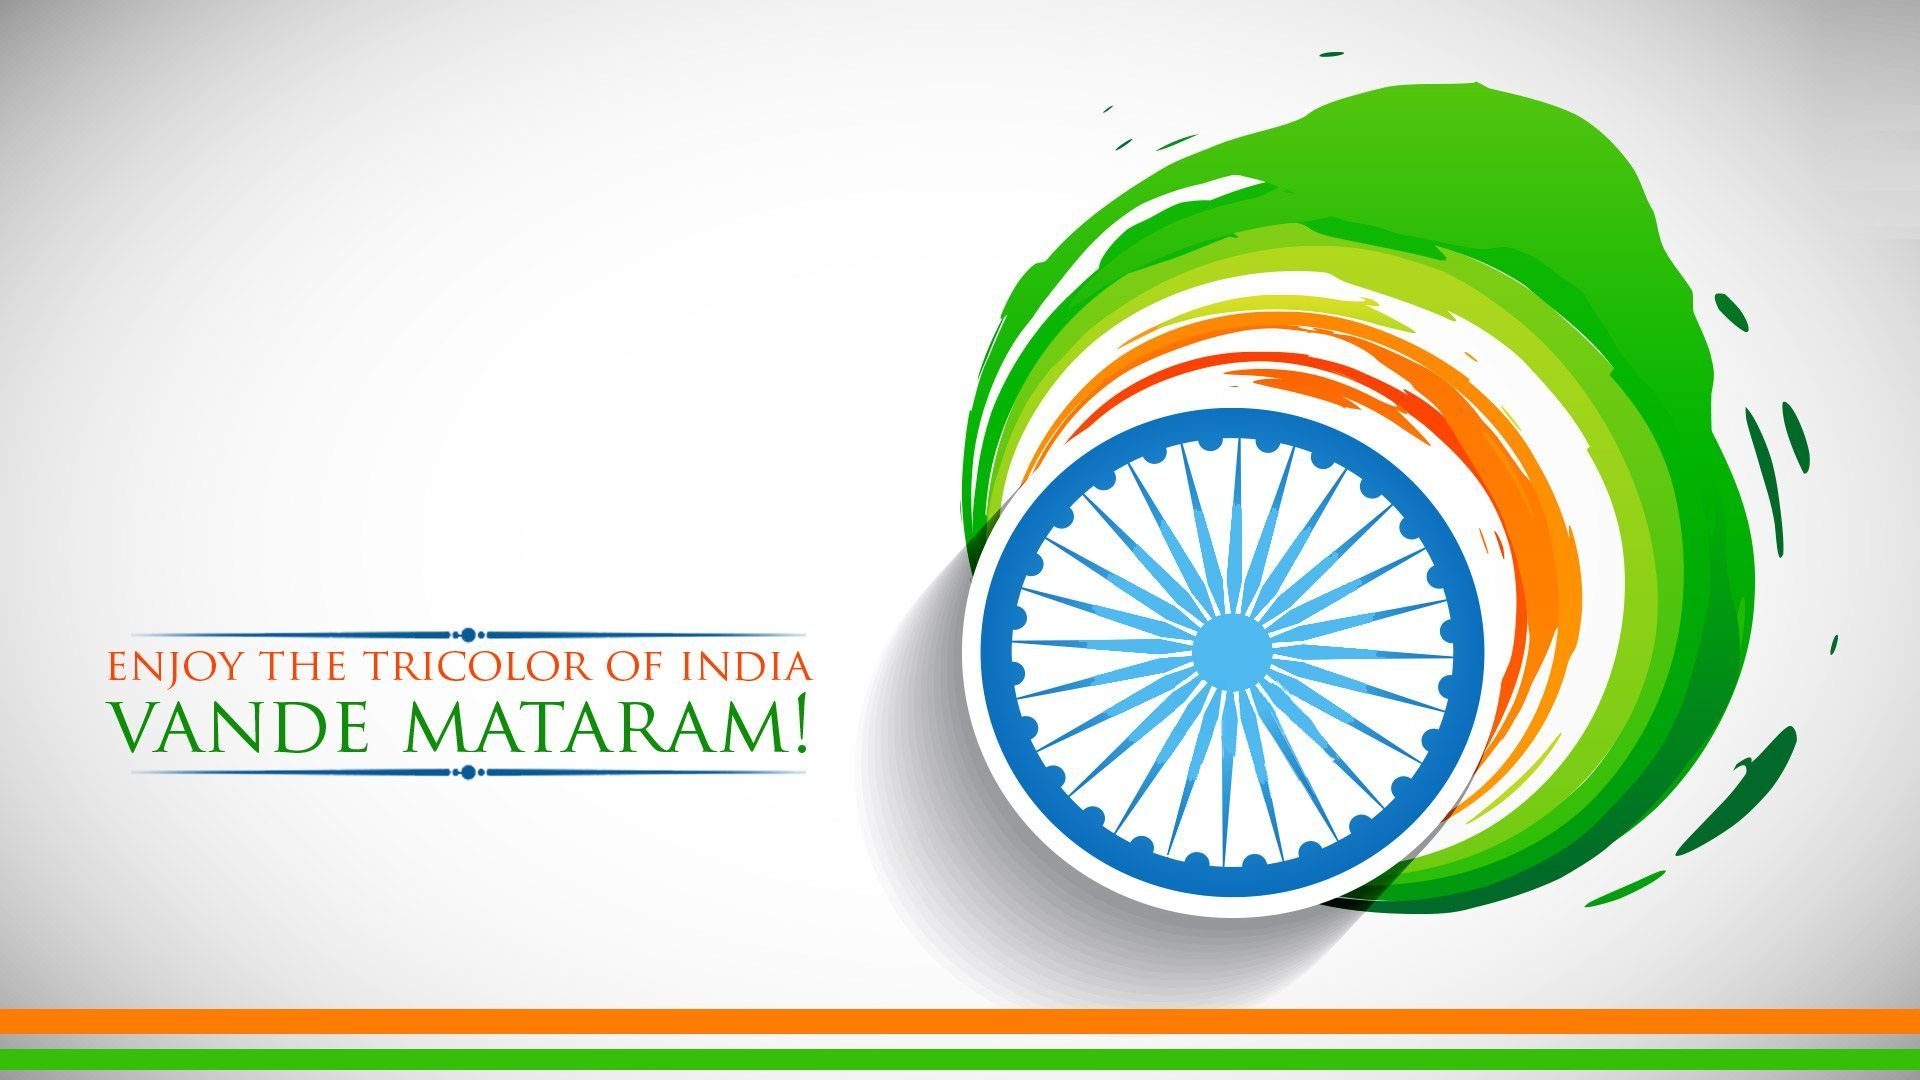 Independence day HD Wallpaper Download with vande mataram